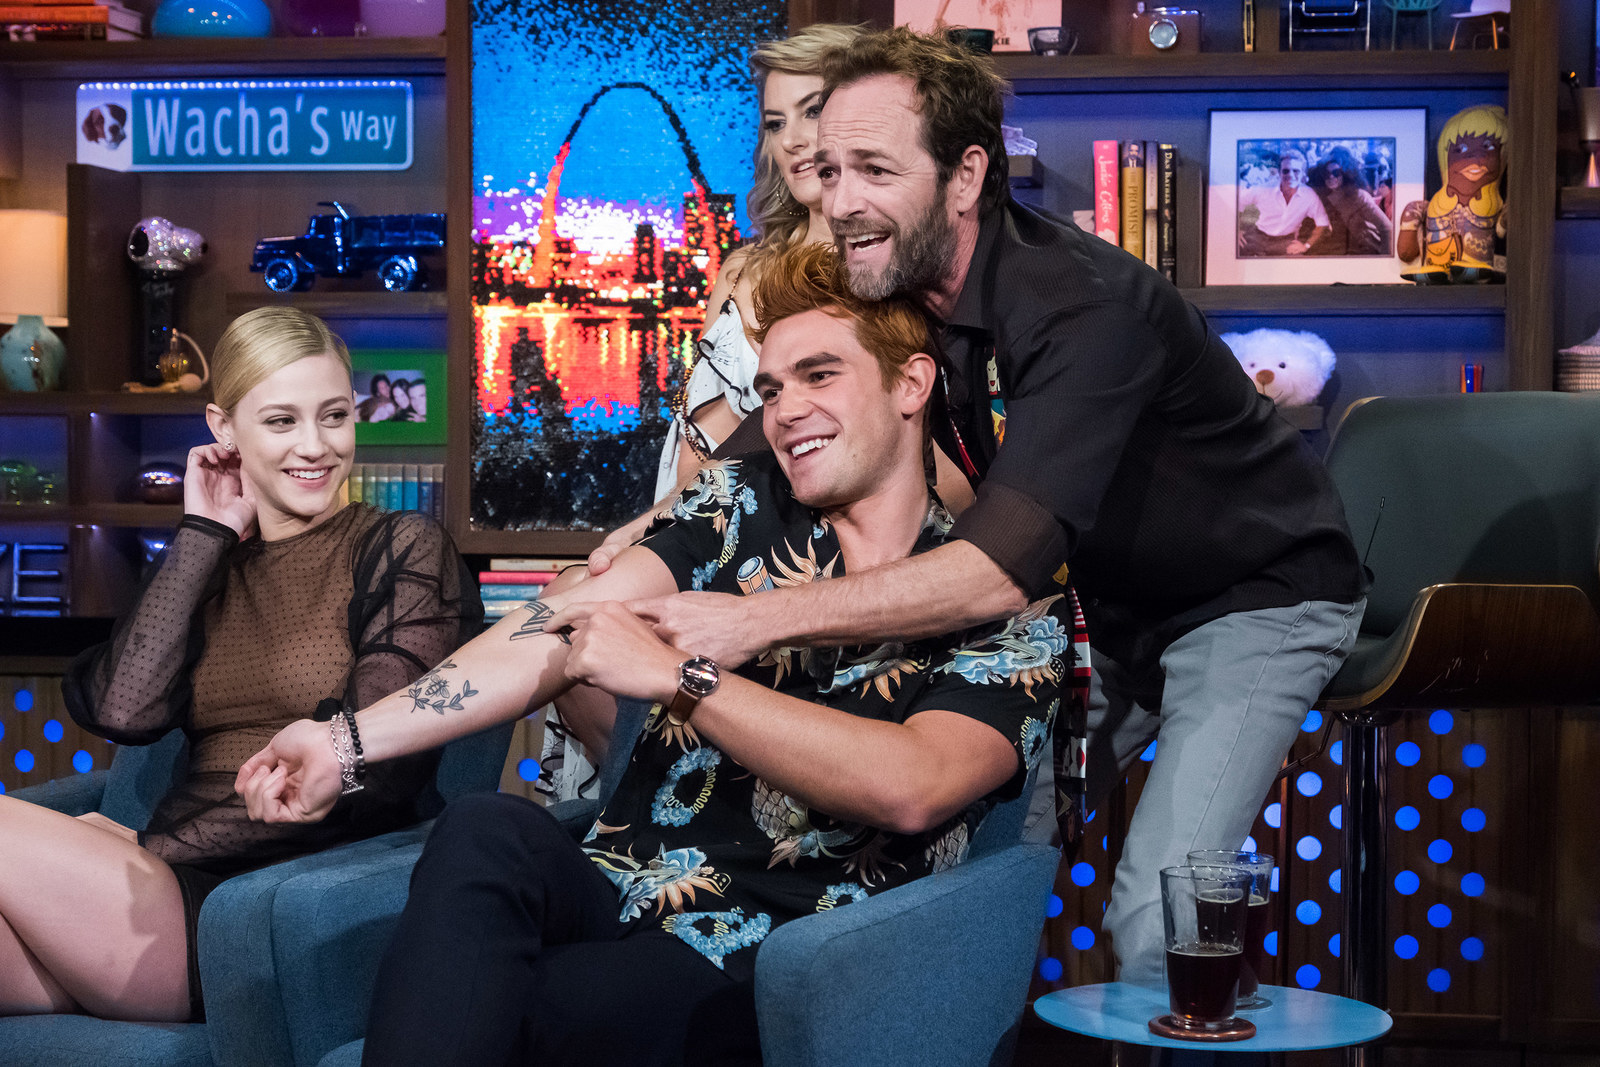 WATCH WHAT HAPPENS LIVE WITH ANDY COHEN -- Pictured (l-r): Lili Reinhart, KJ Apa, Madchen Amick and Luke Perry -- (Photo by: Charles Sykes/Bravo/NBCU Photo Bank via Getty Images)